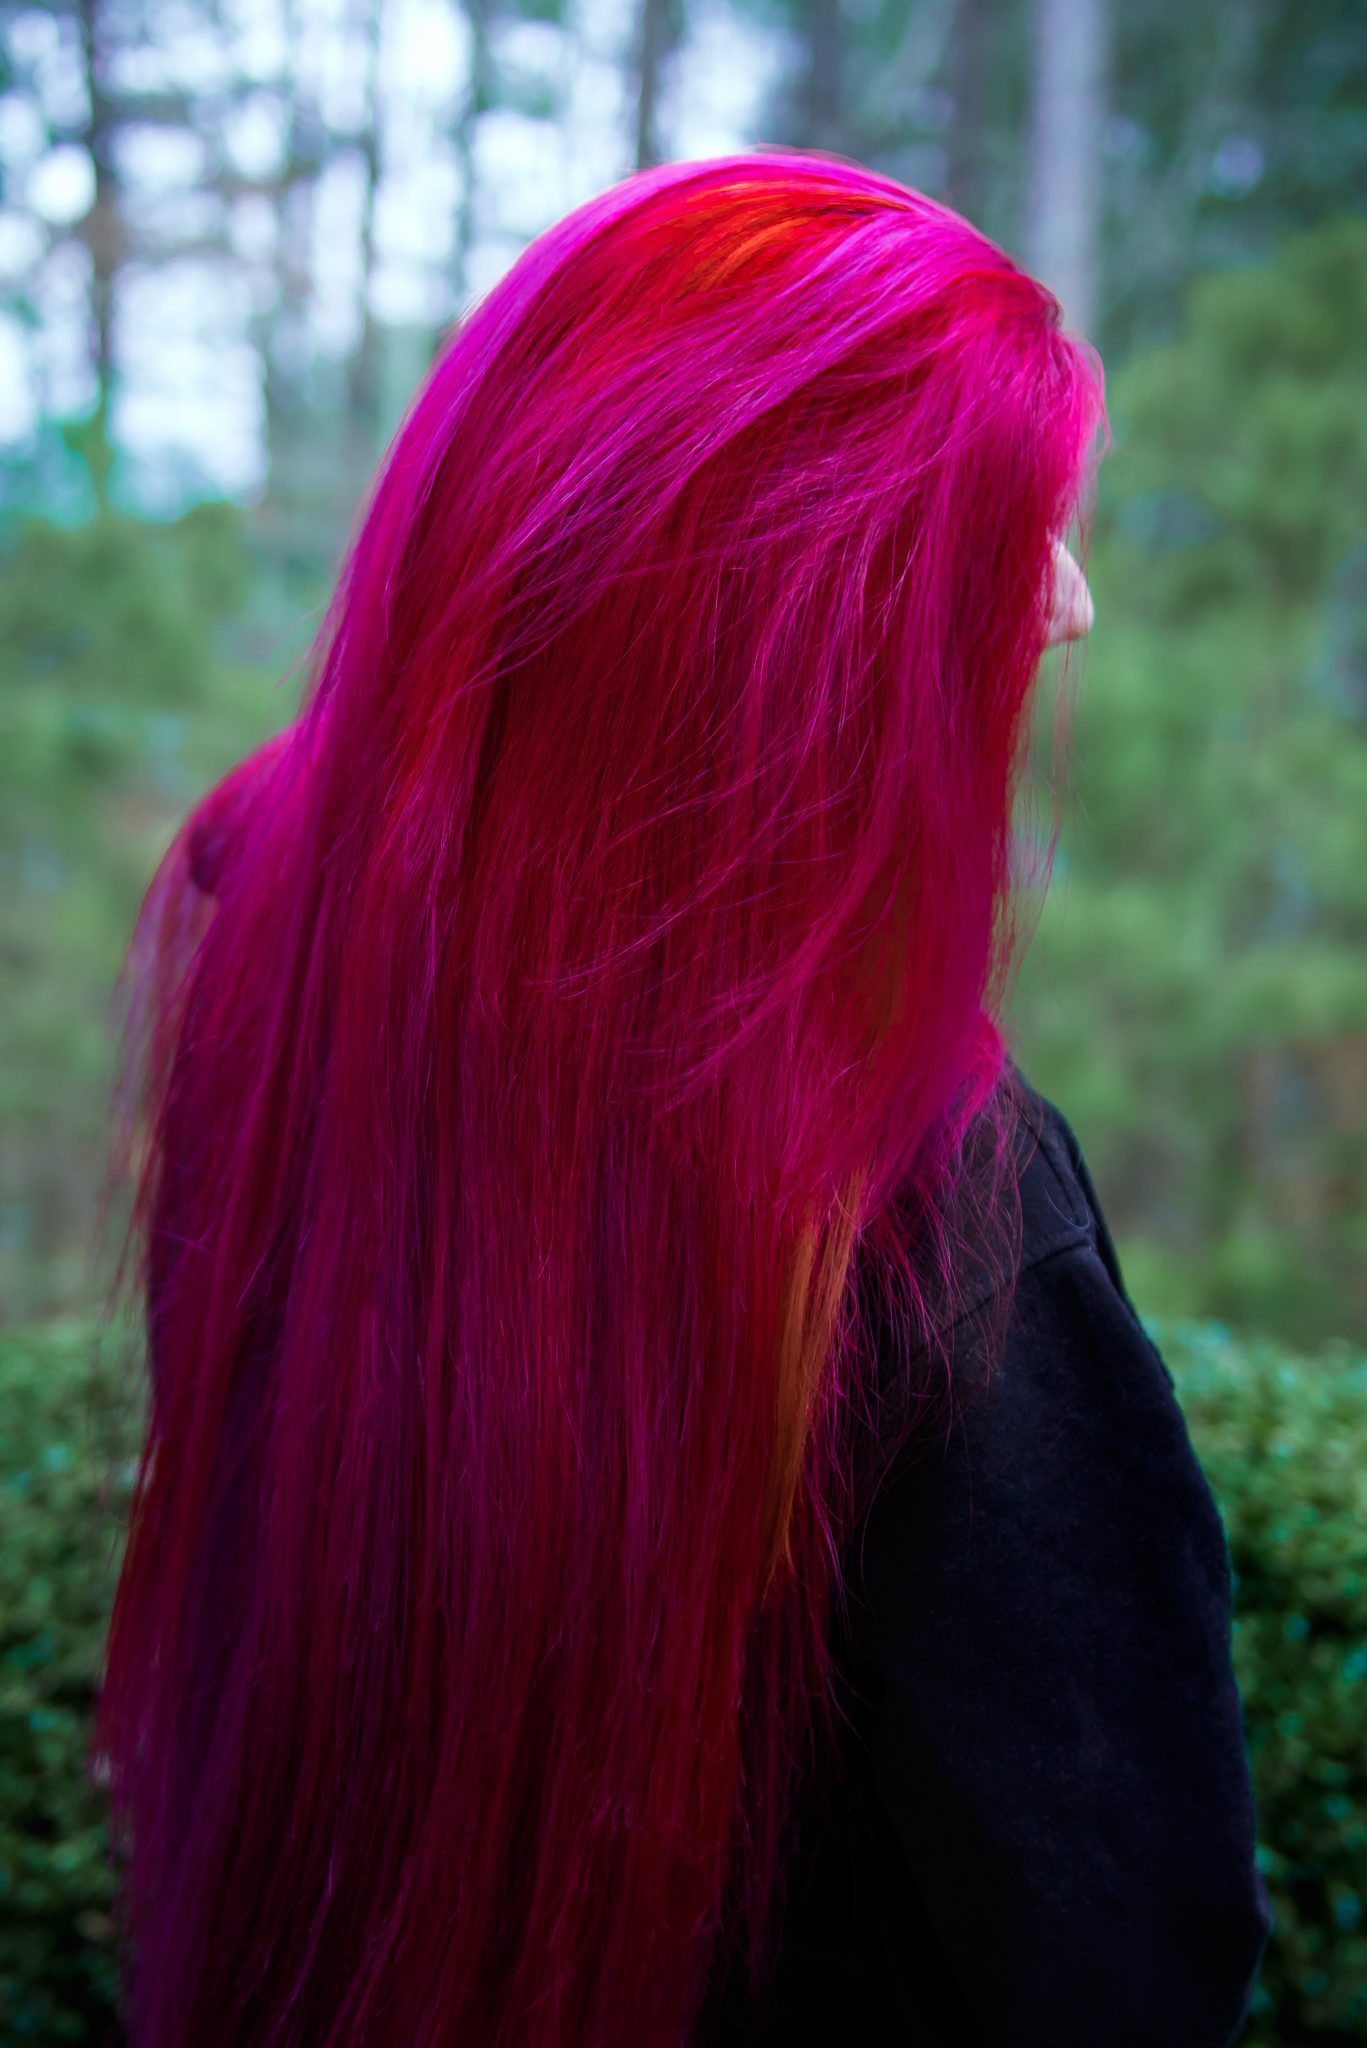 Red And Pink Bedroom: Rainbow Hair & Multi-Colored Hair